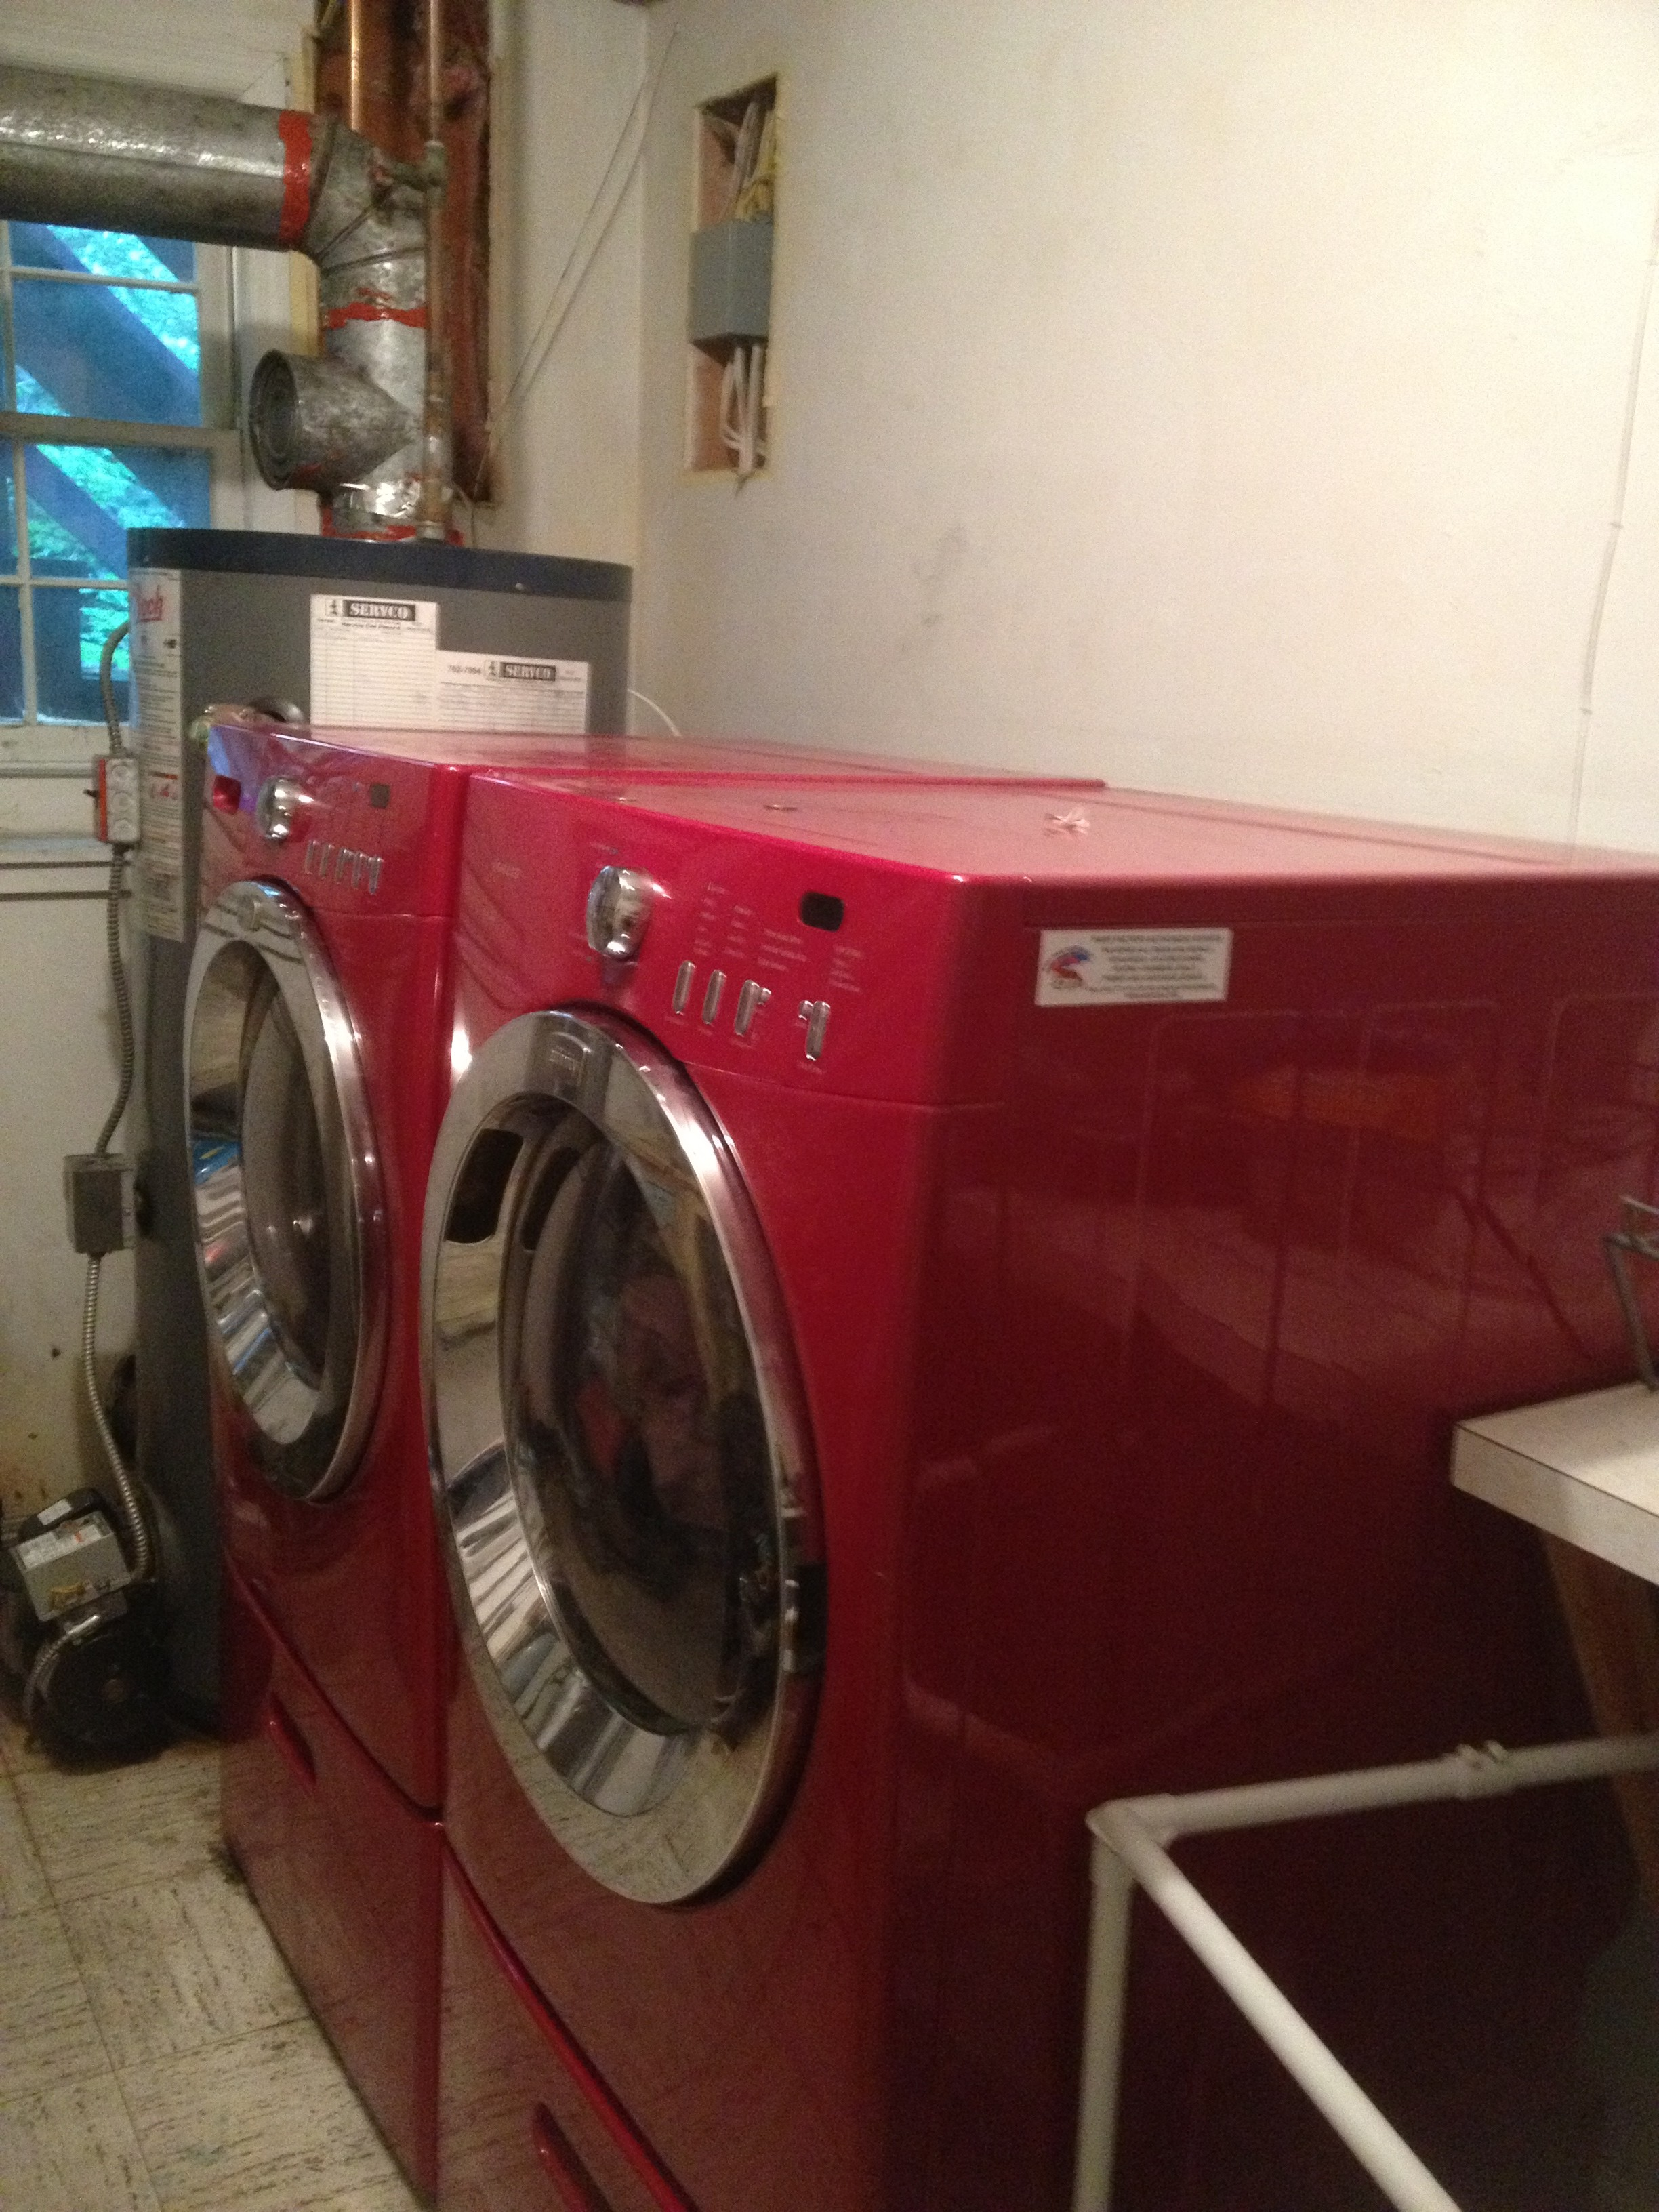 Tips For Laundry Room Safety